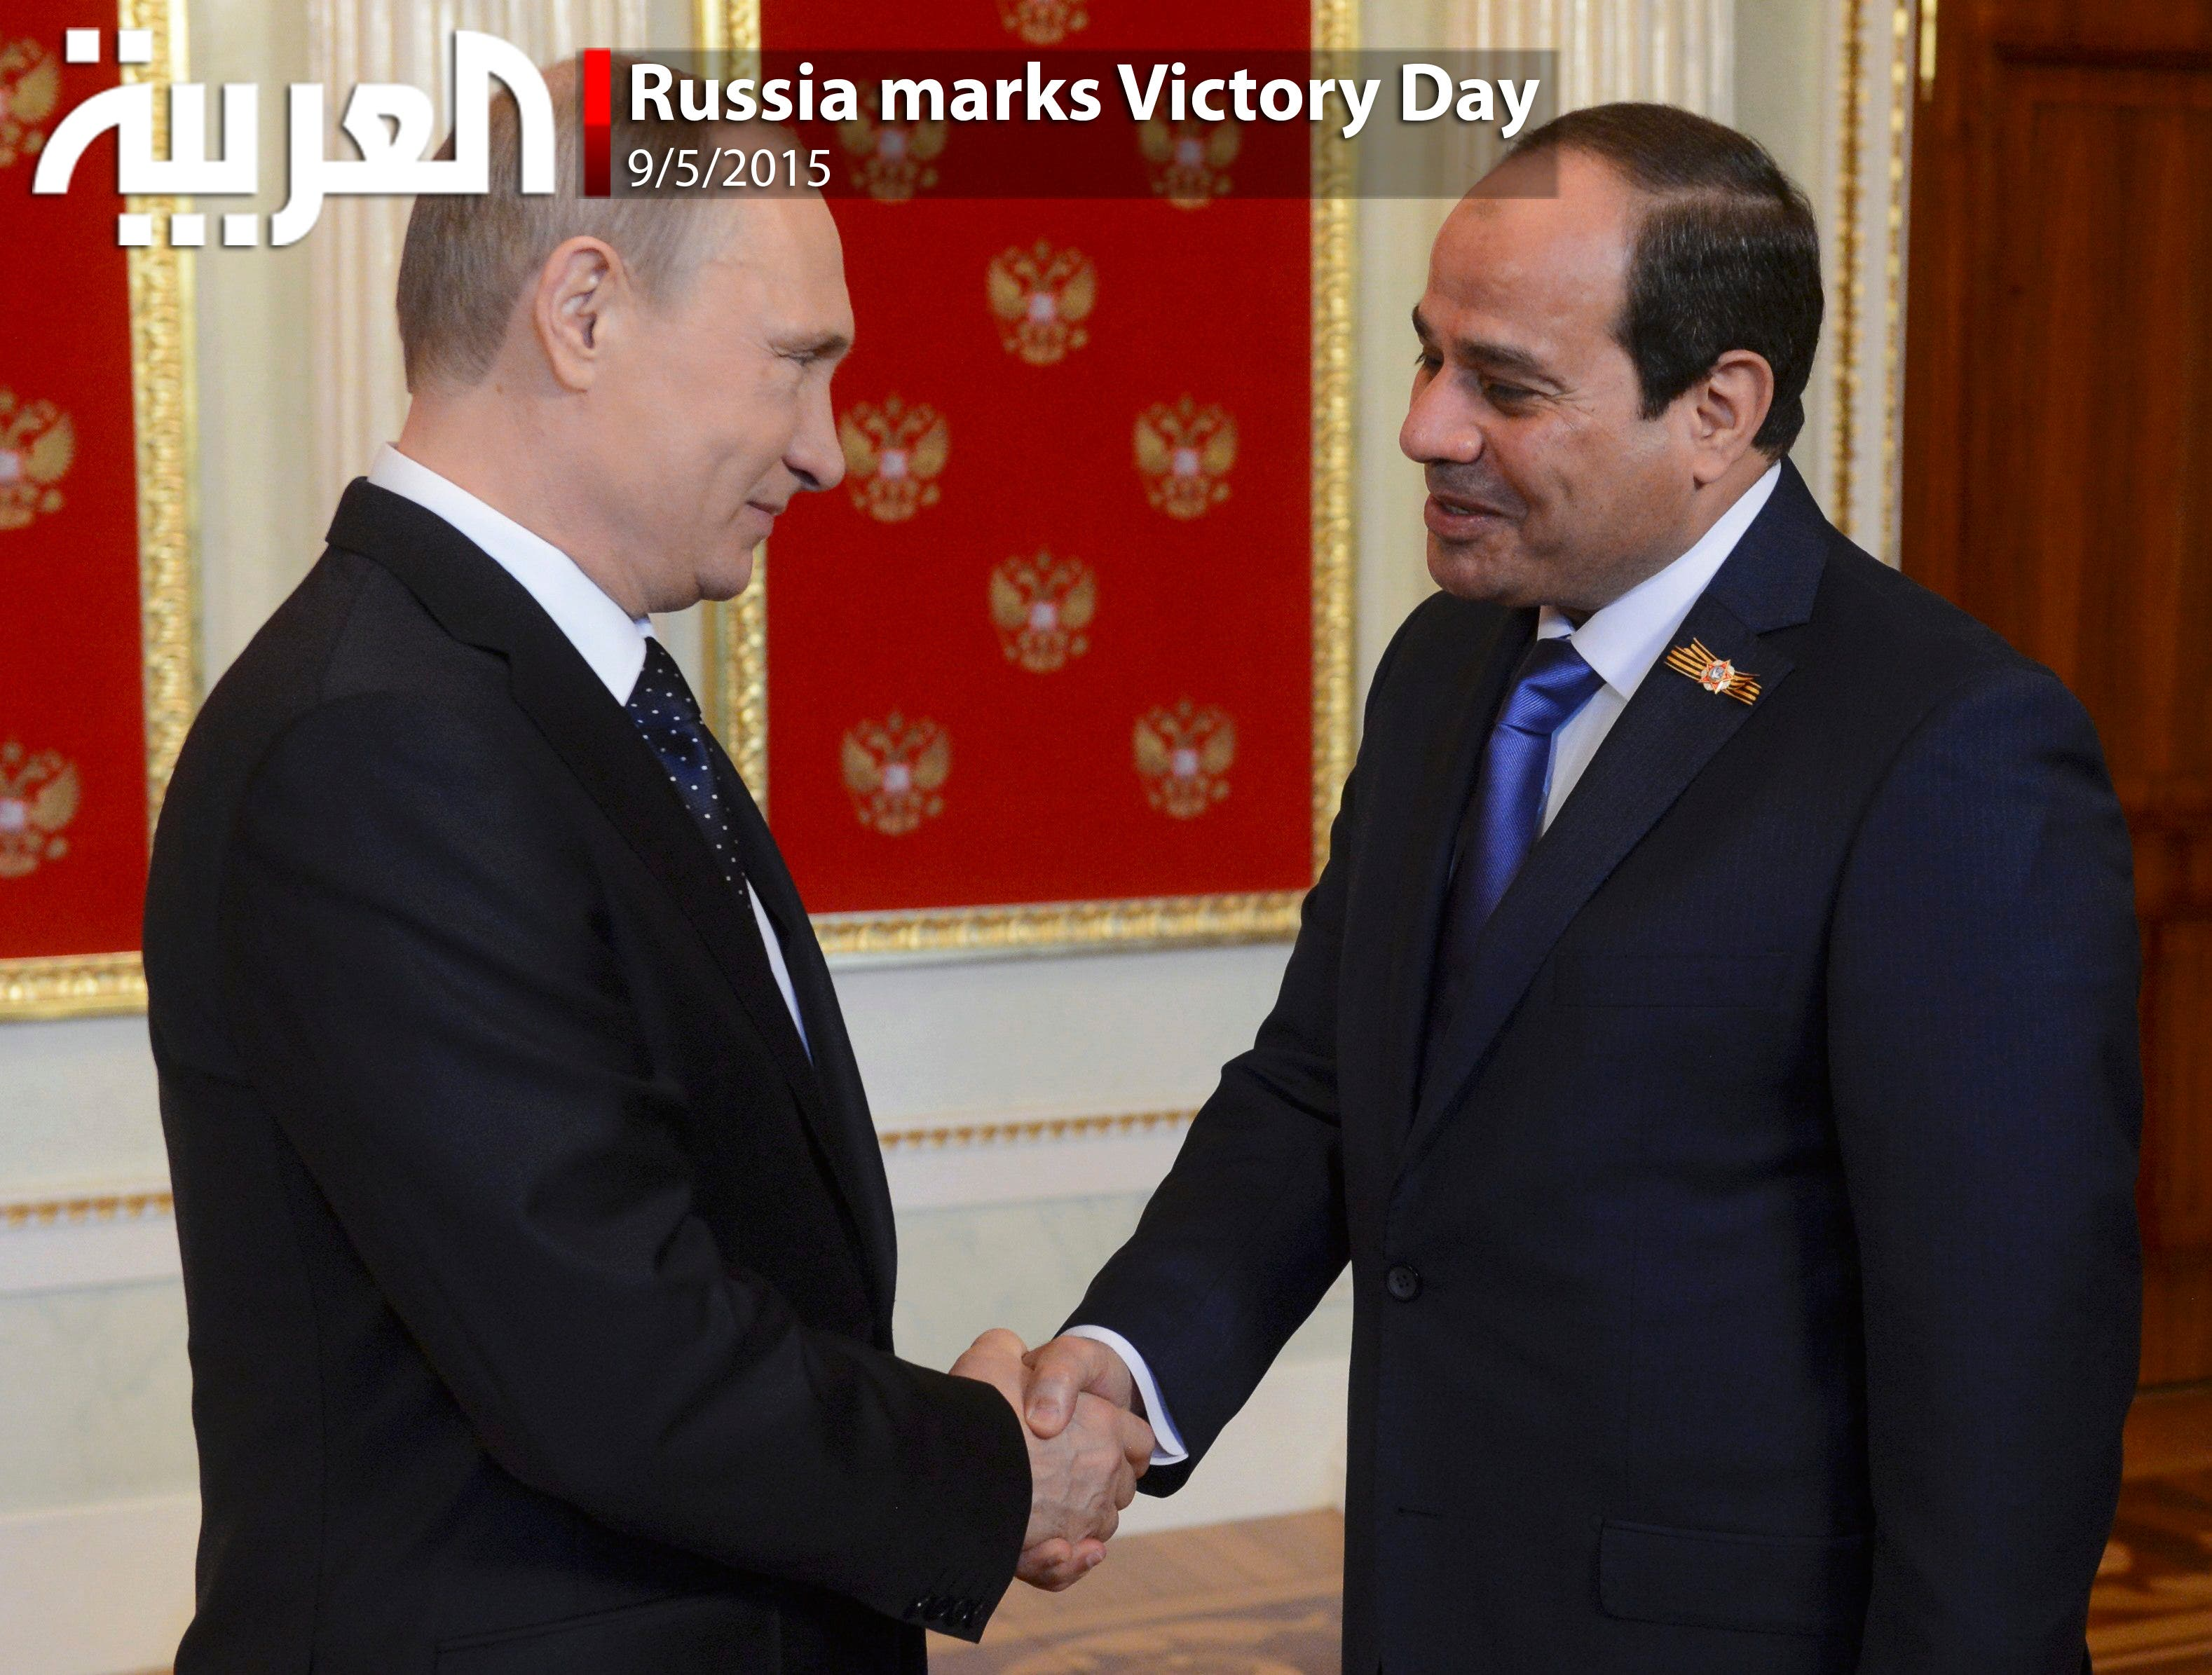 Russia marks victory day al arabiya english russian president putin shakes hands with egyptian president al sisi during a welcome reception for foreign delegations heads and honorary guests in the kristyandbryce Images